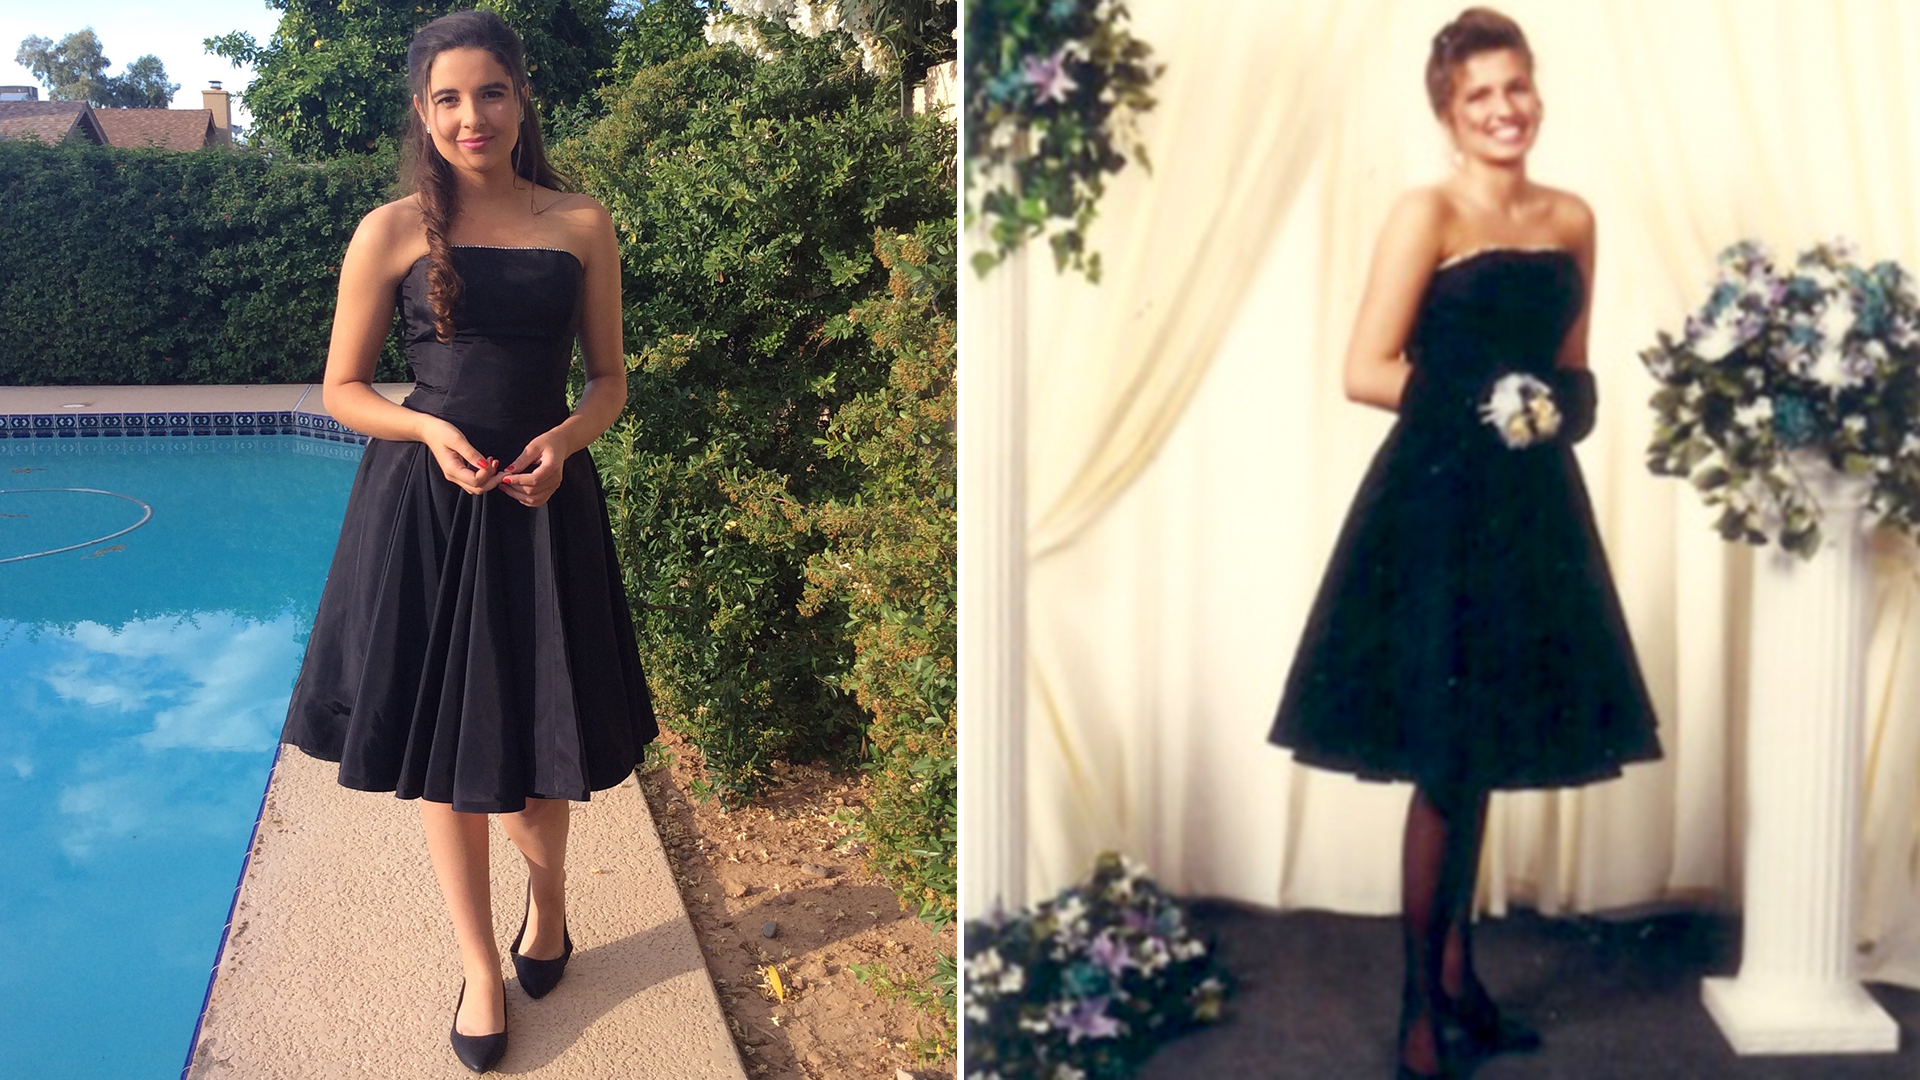 Teen feels like a princess in mom\'s prom dress 25 years later